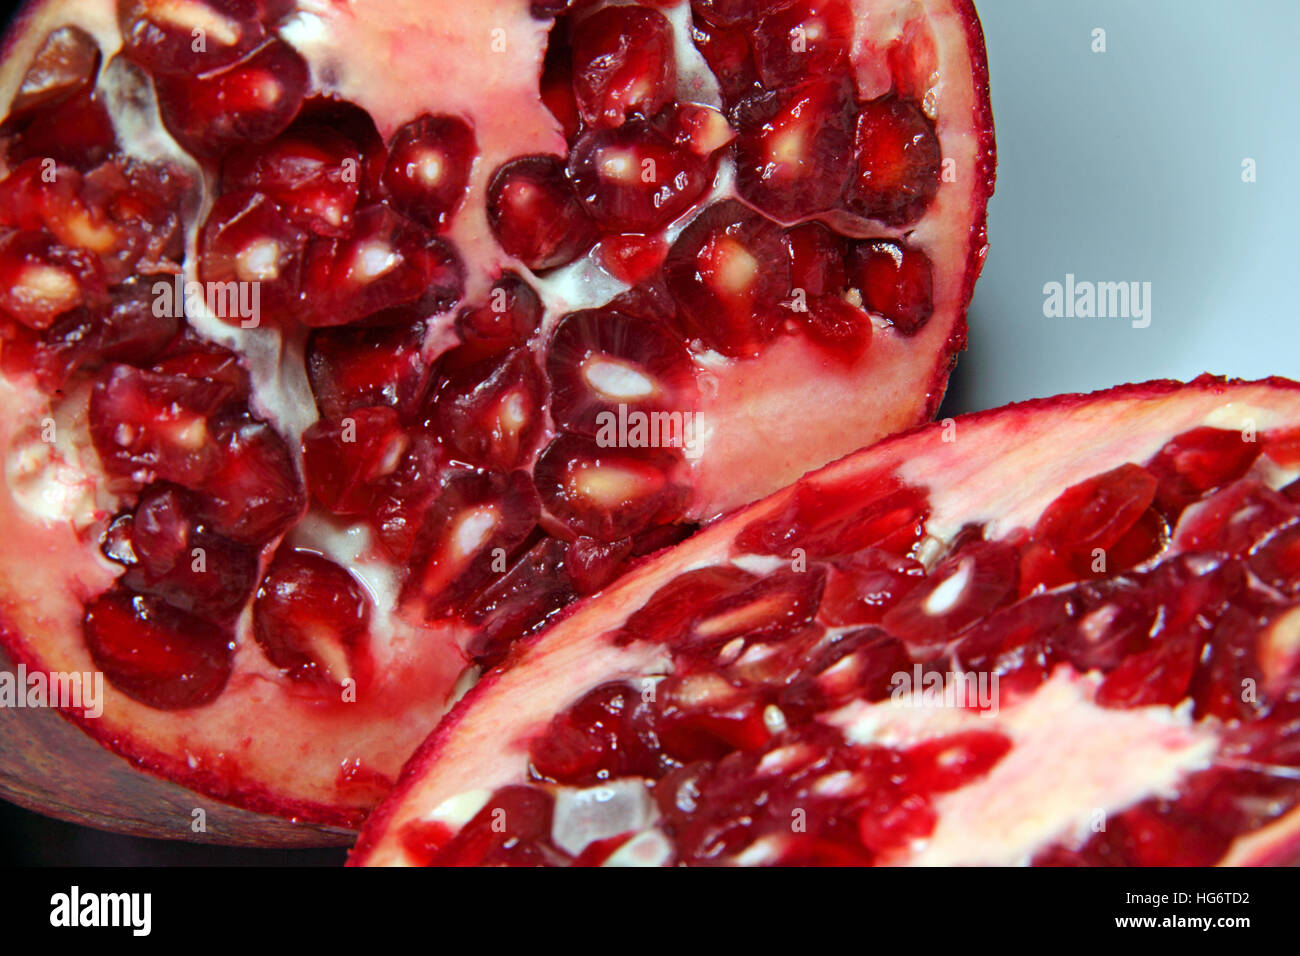 Red Pomegranate Fruit - cut open - Stock Image